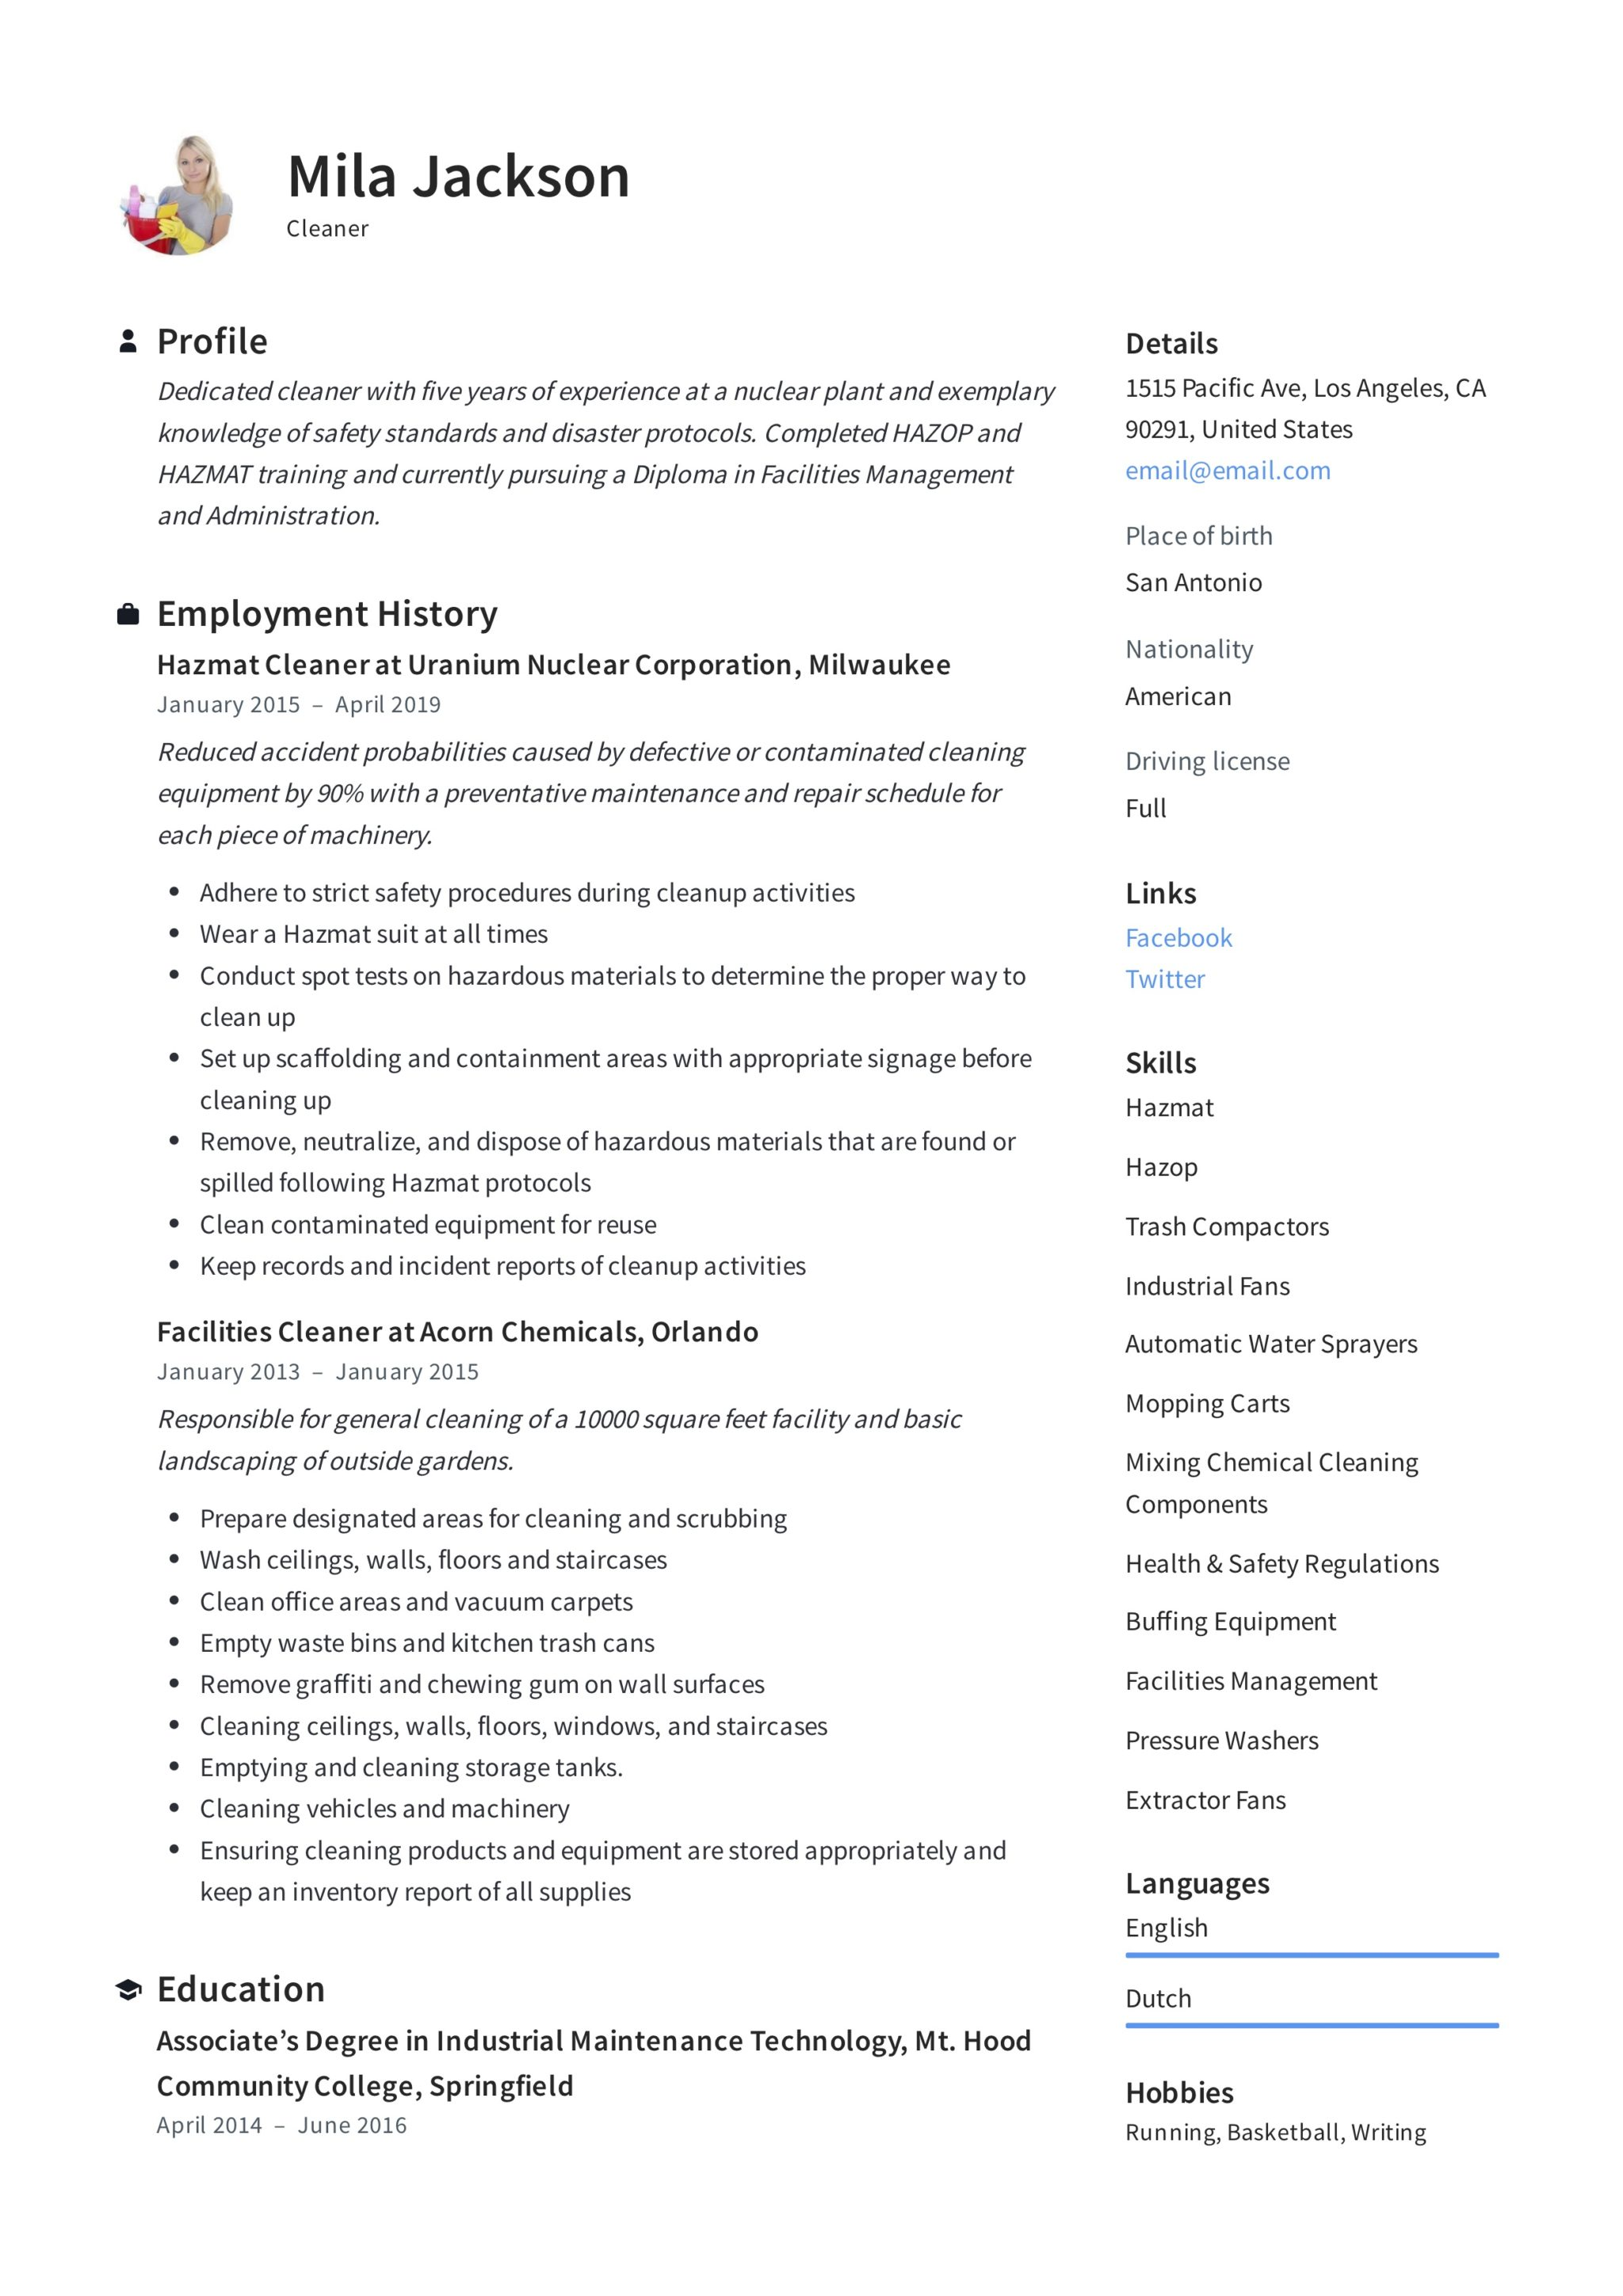 Cleaner Resume